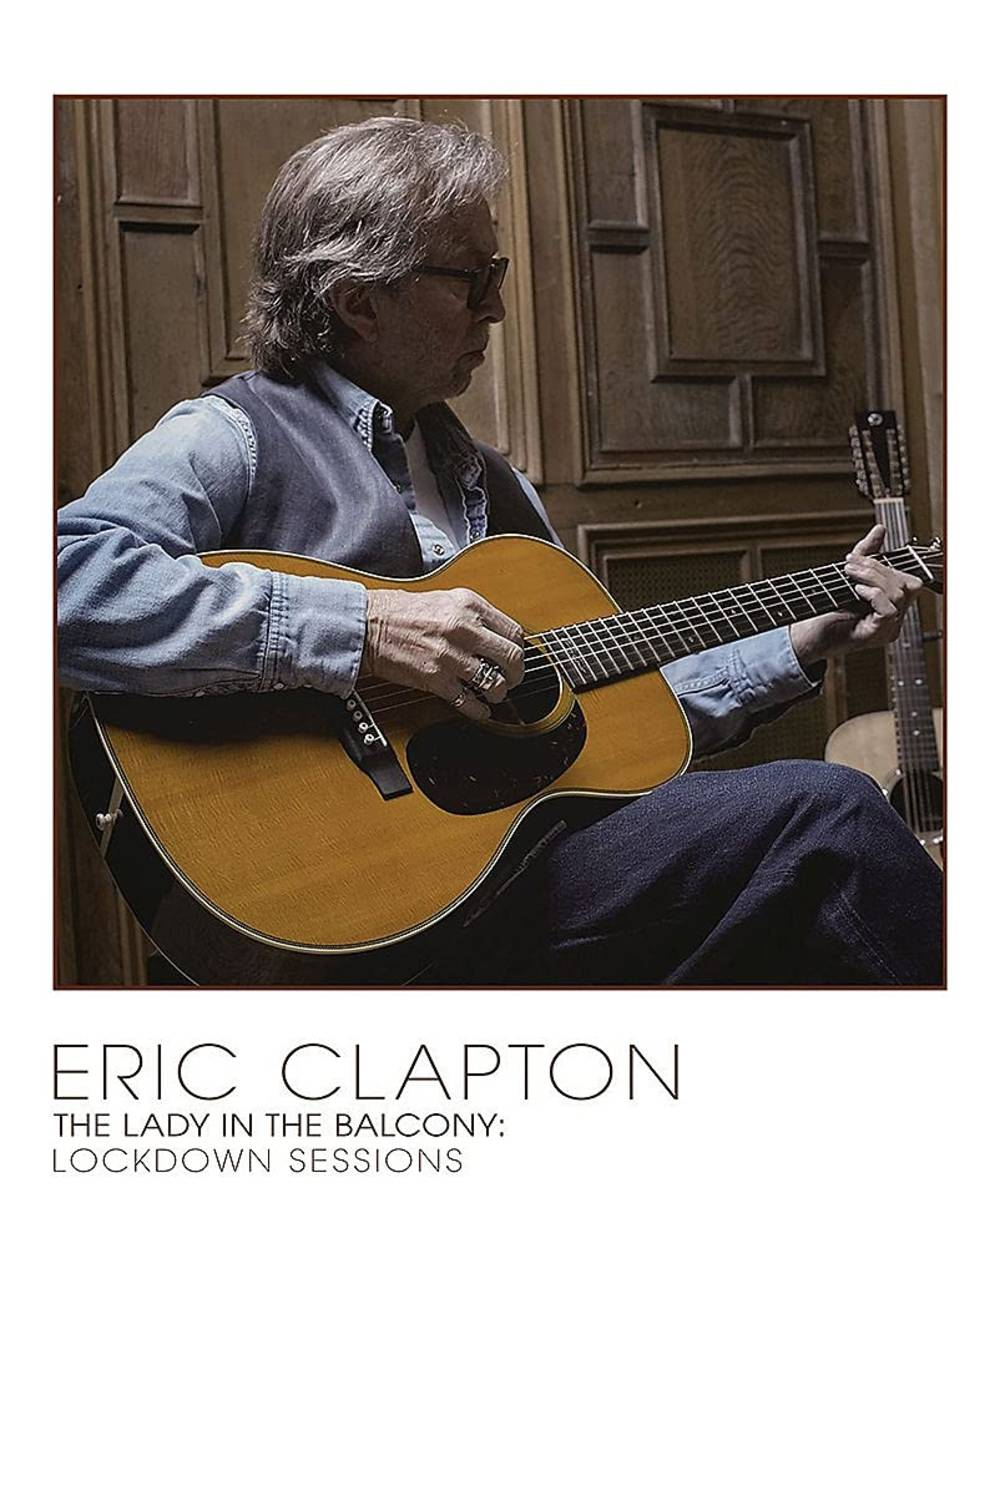 Eric Clapton - The Lady In The Balcony: Lockdown Sessions [Limited Edition Deluxe CD/DVD/Blu-ray]